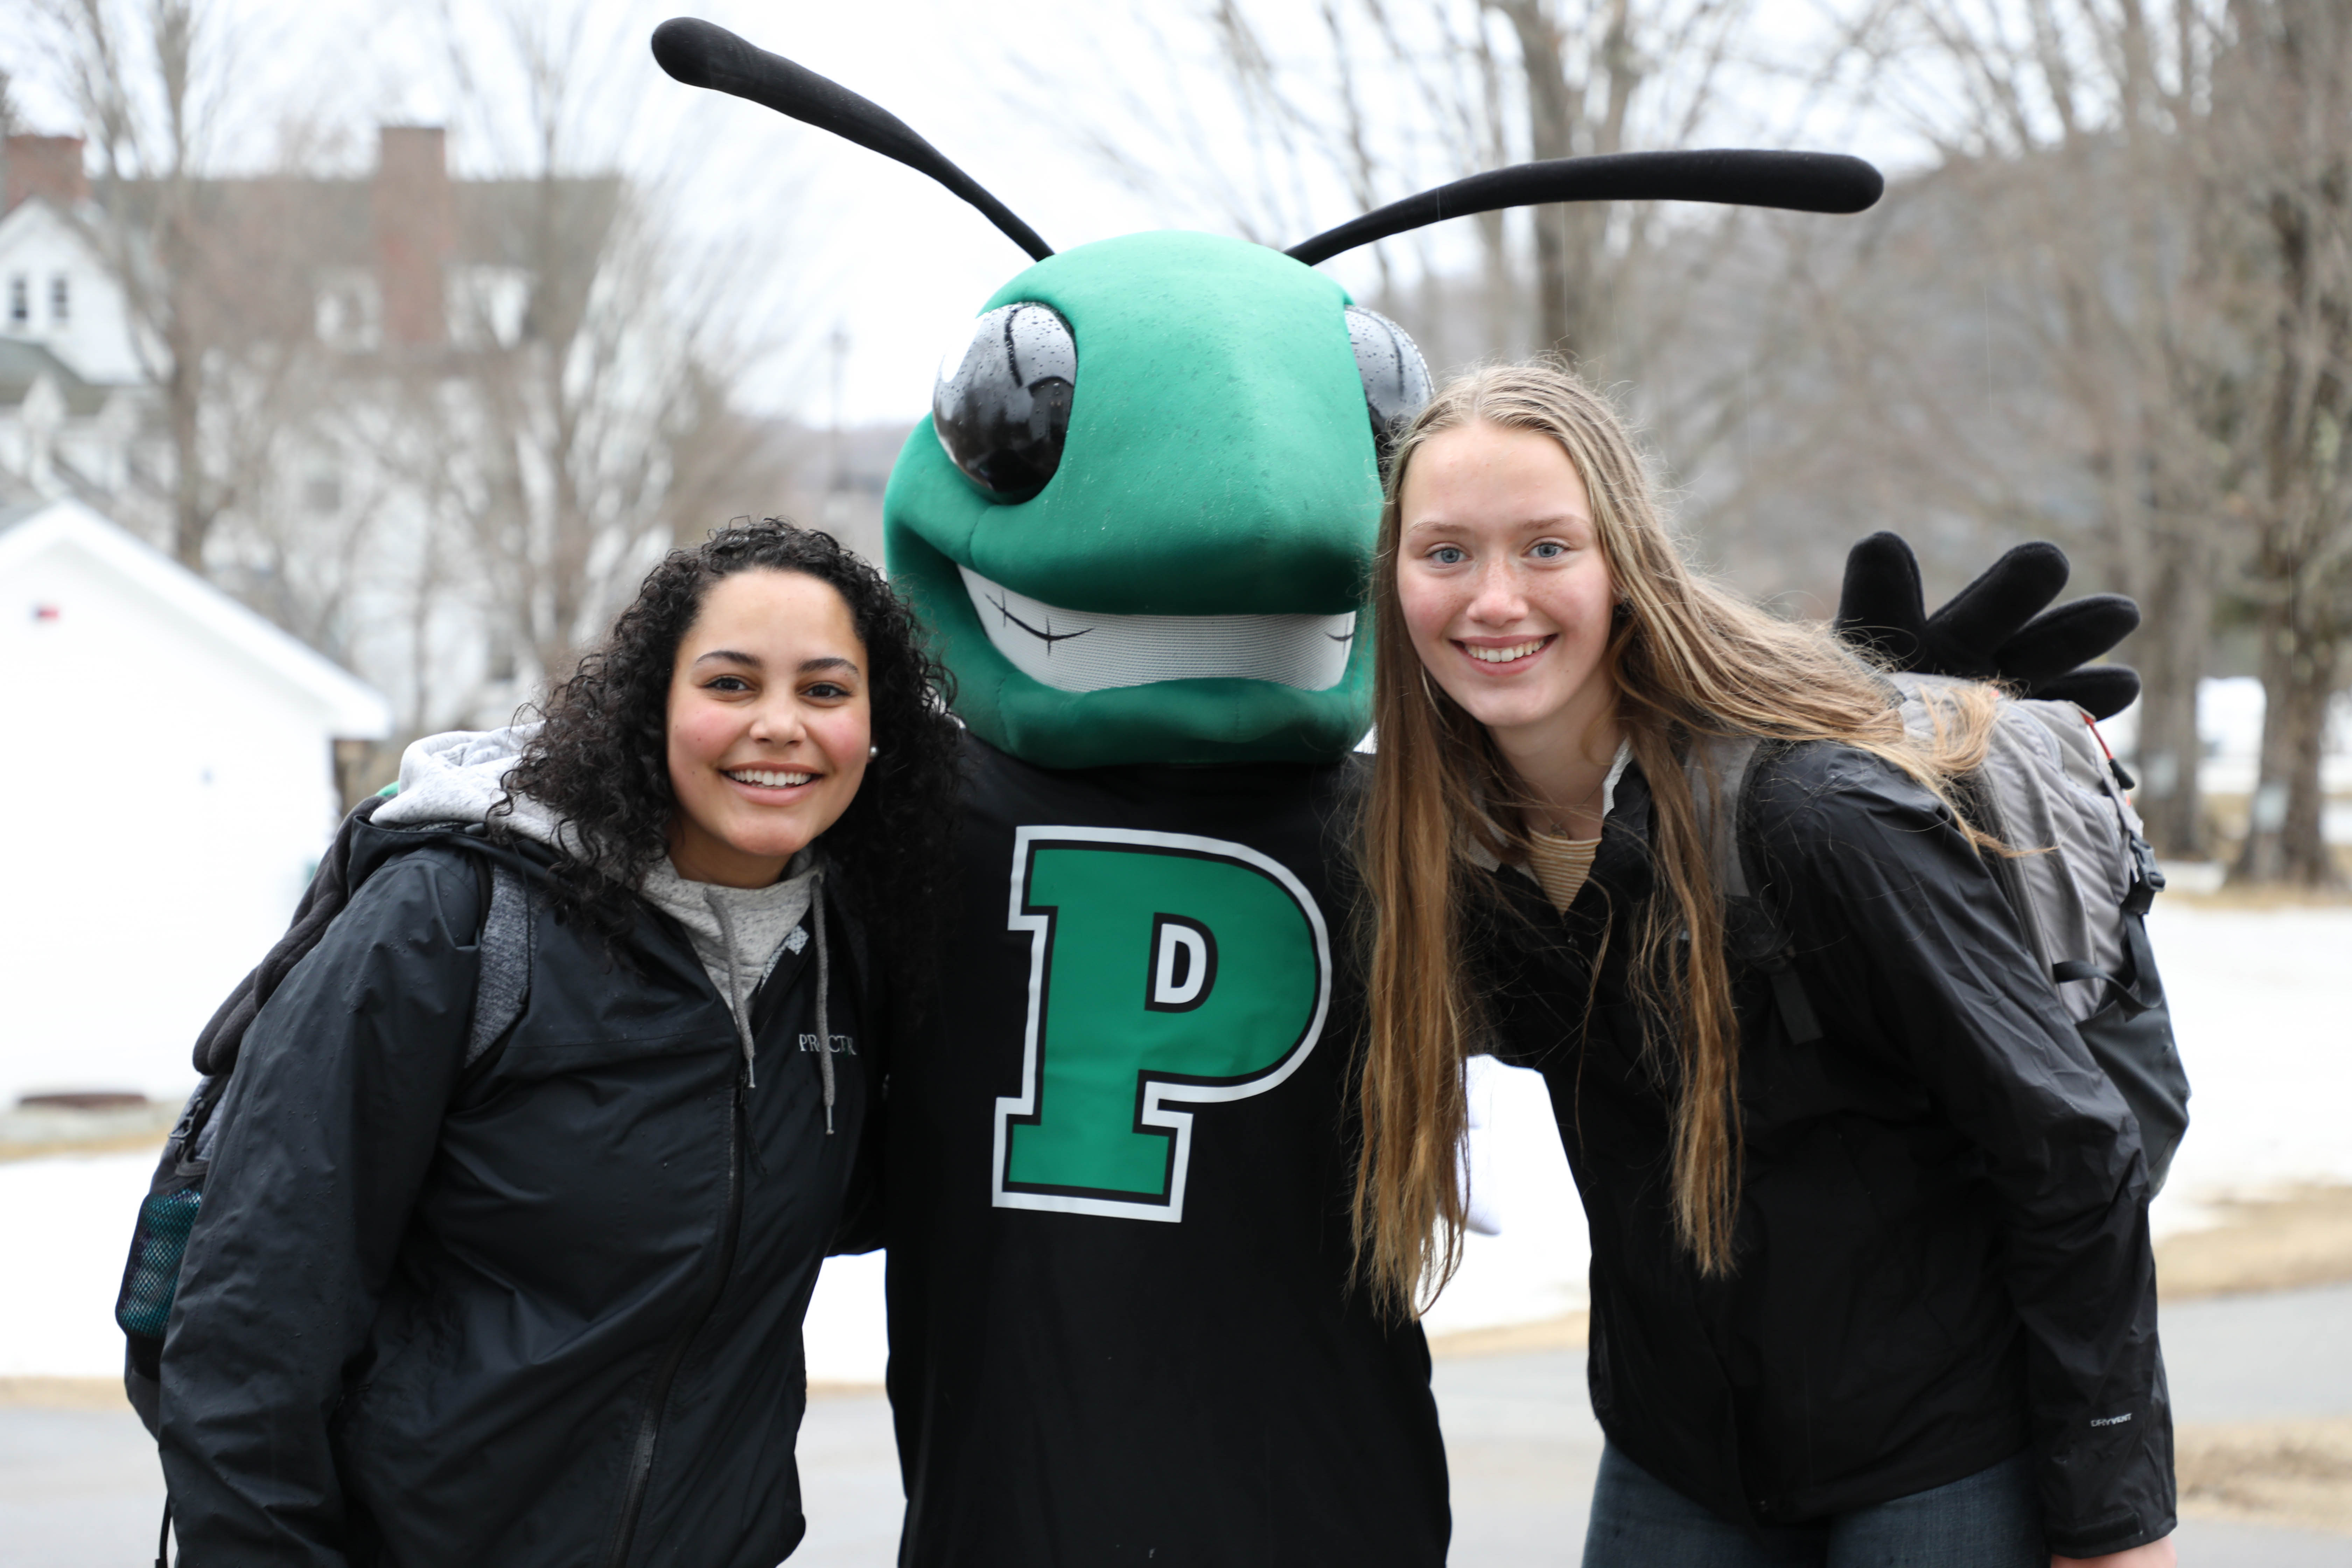 Proctor Academy Admissions